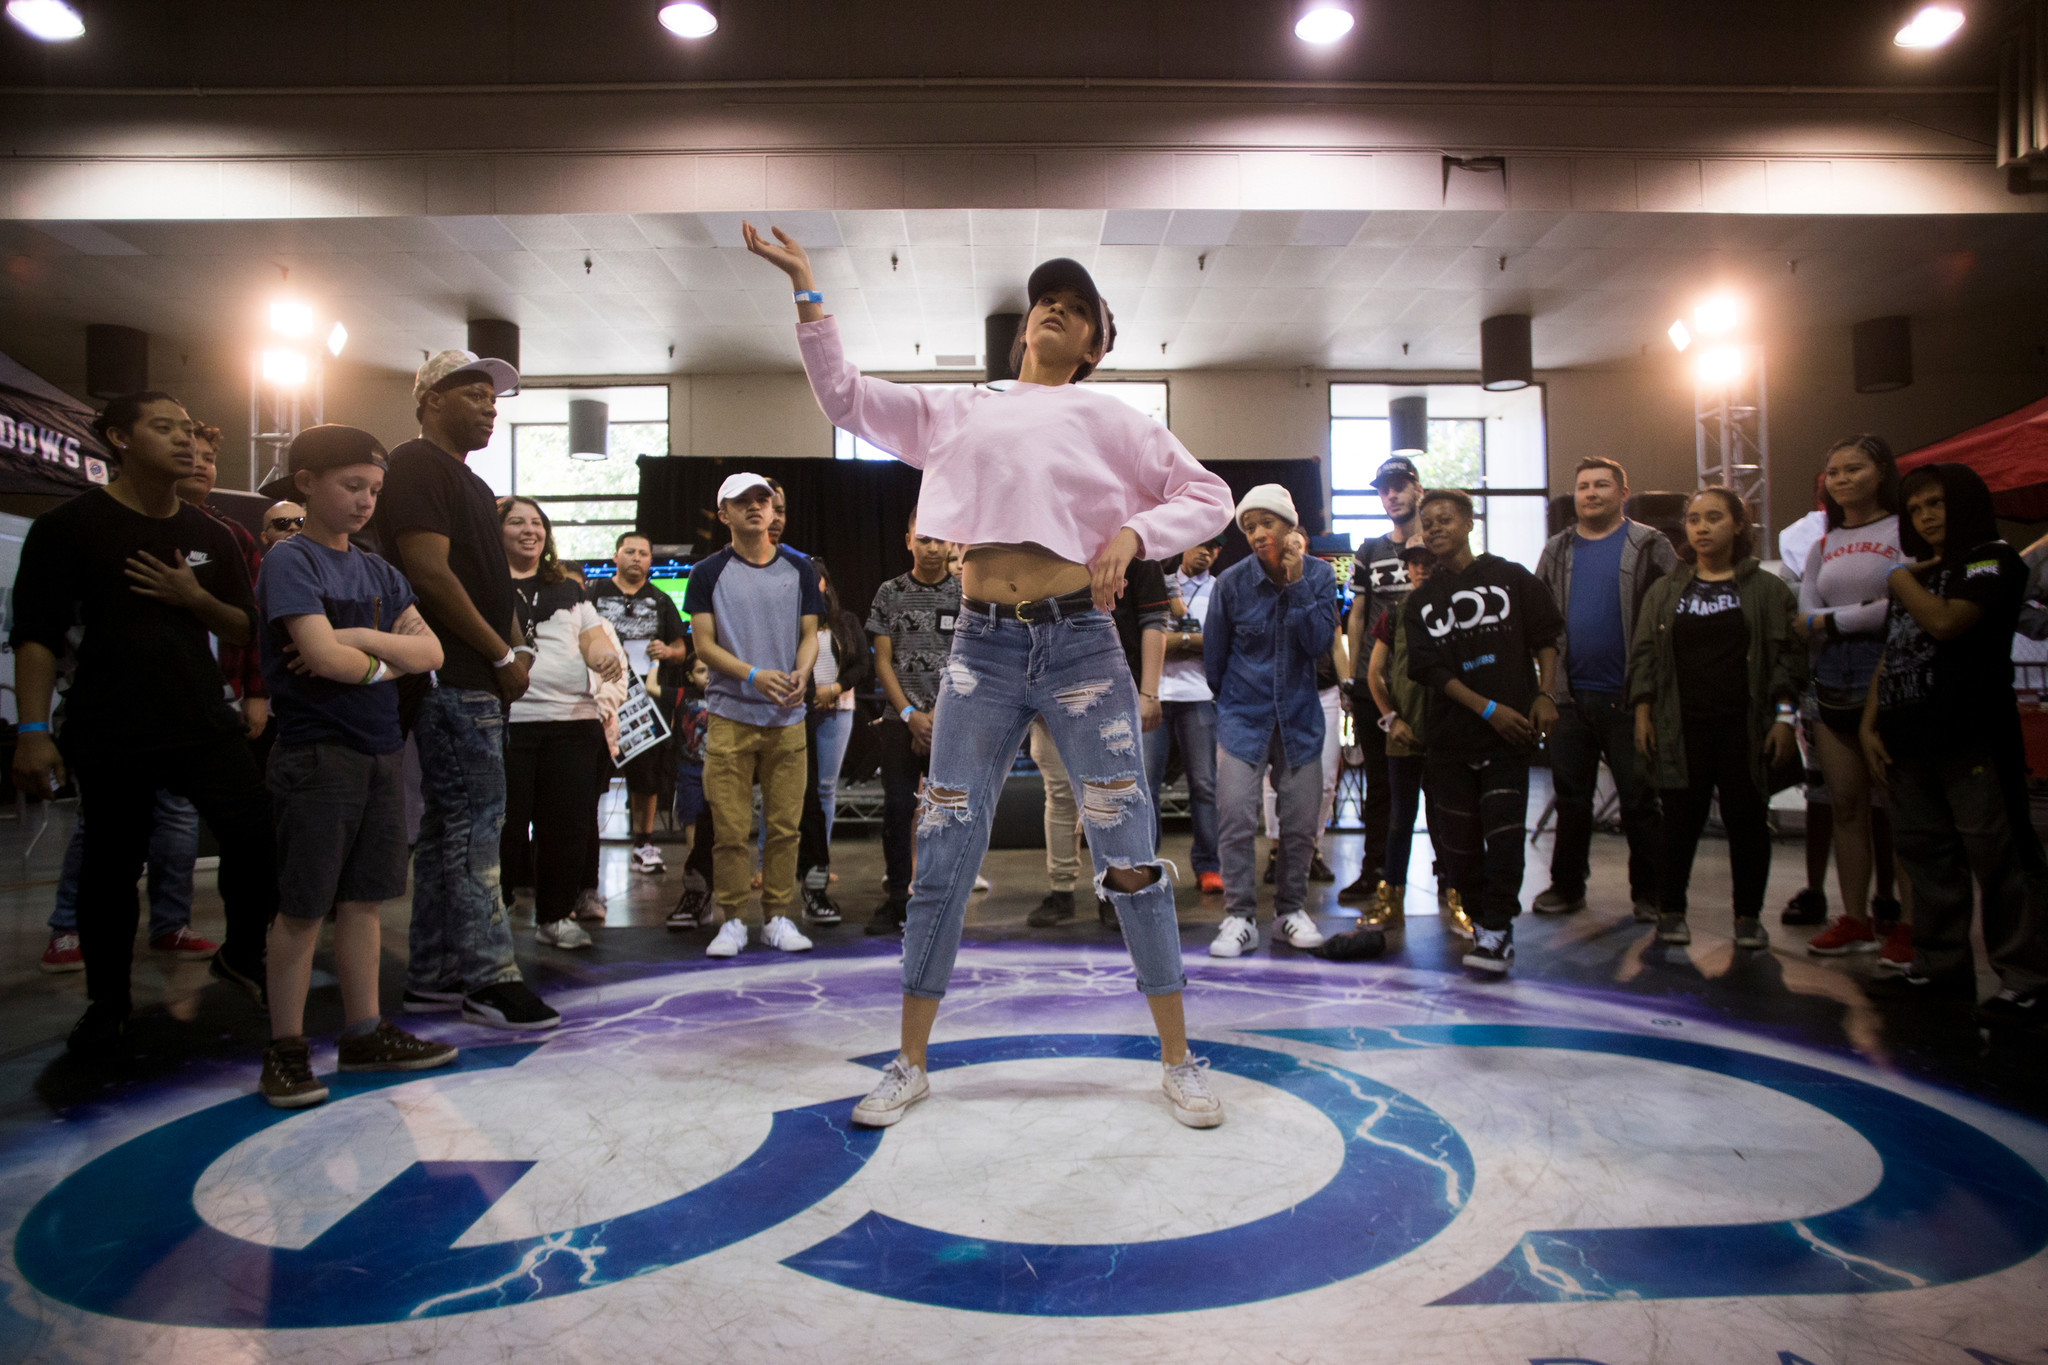 Acacia Harrell, 16, of Ventura dances hip-hop style.